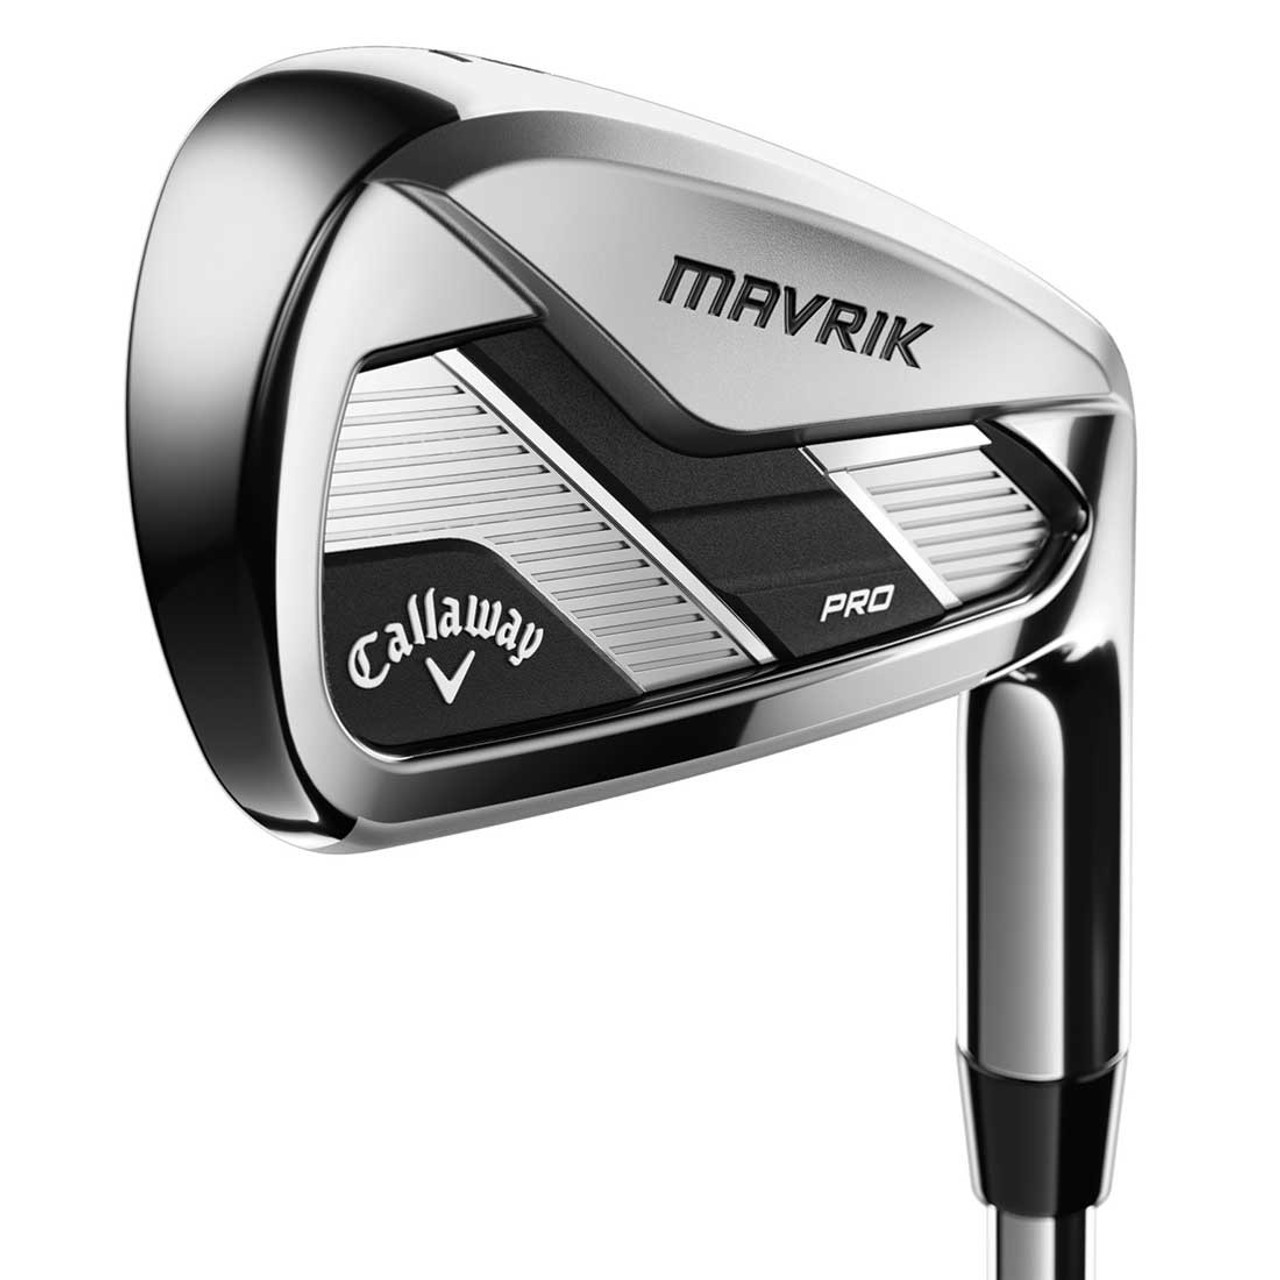 Callaway MAVRIK PRO Individual Irons and Wedges